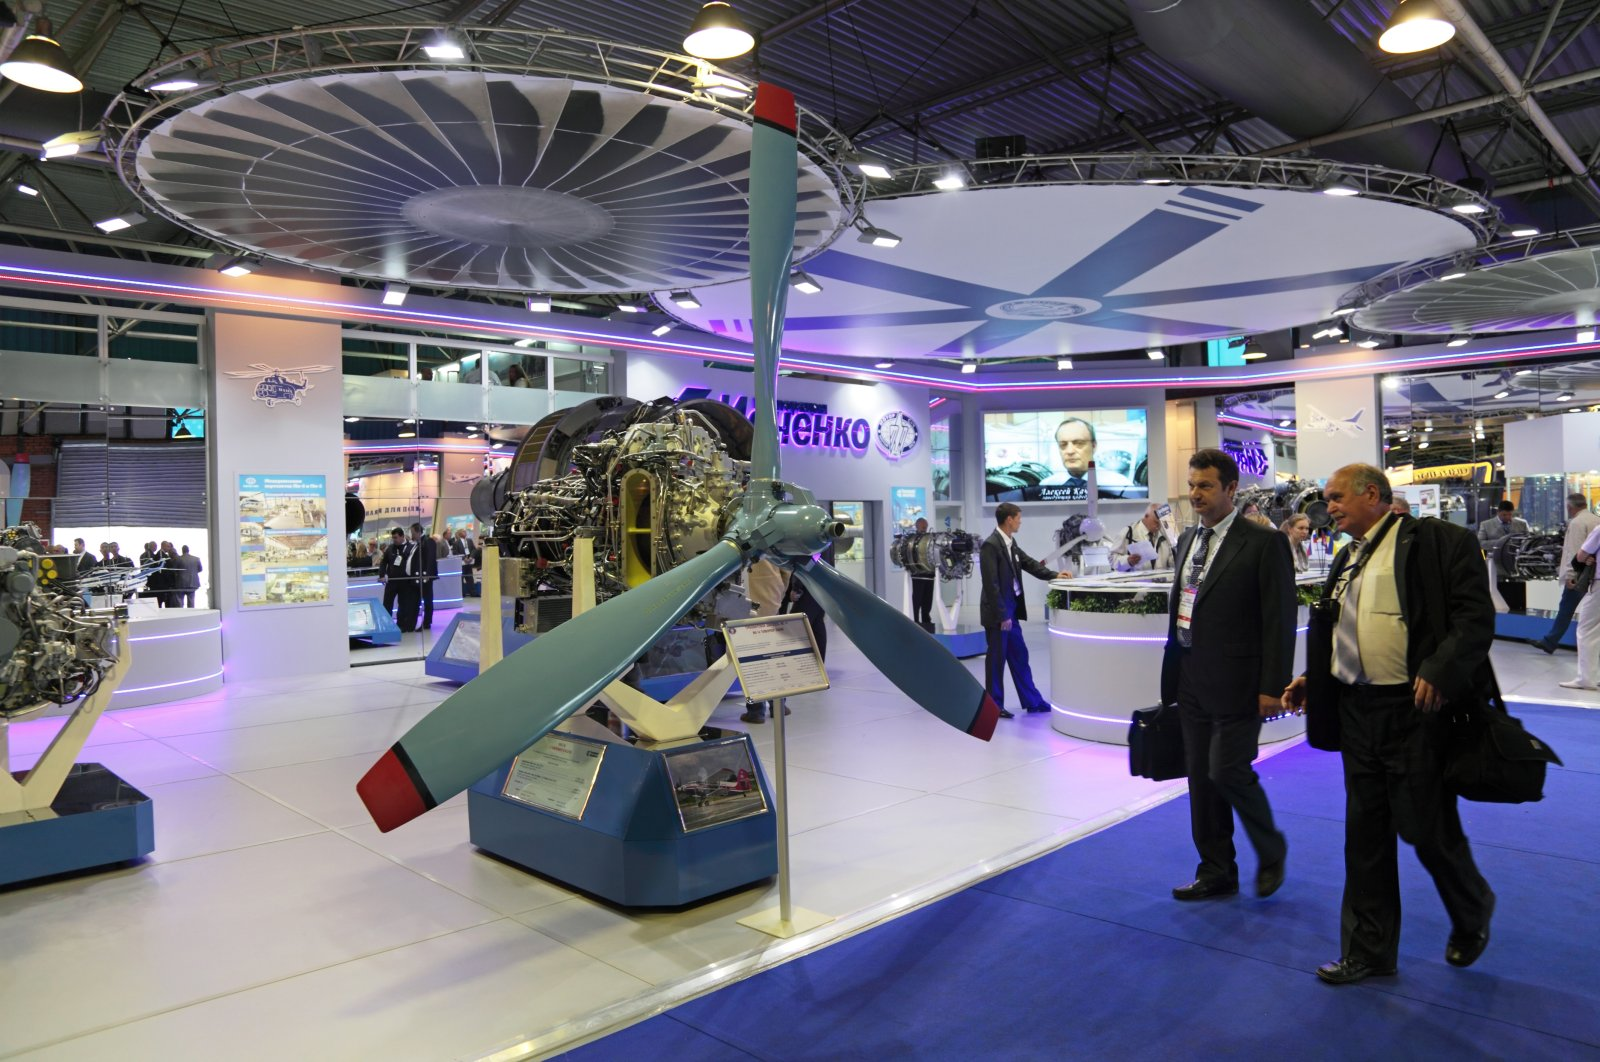 The stand of the Ivchenko-Progress company at the International Aviation and Space salon, Zhukovsky, Russia, Aug. 27, 2013. (Shutterstock Photo)